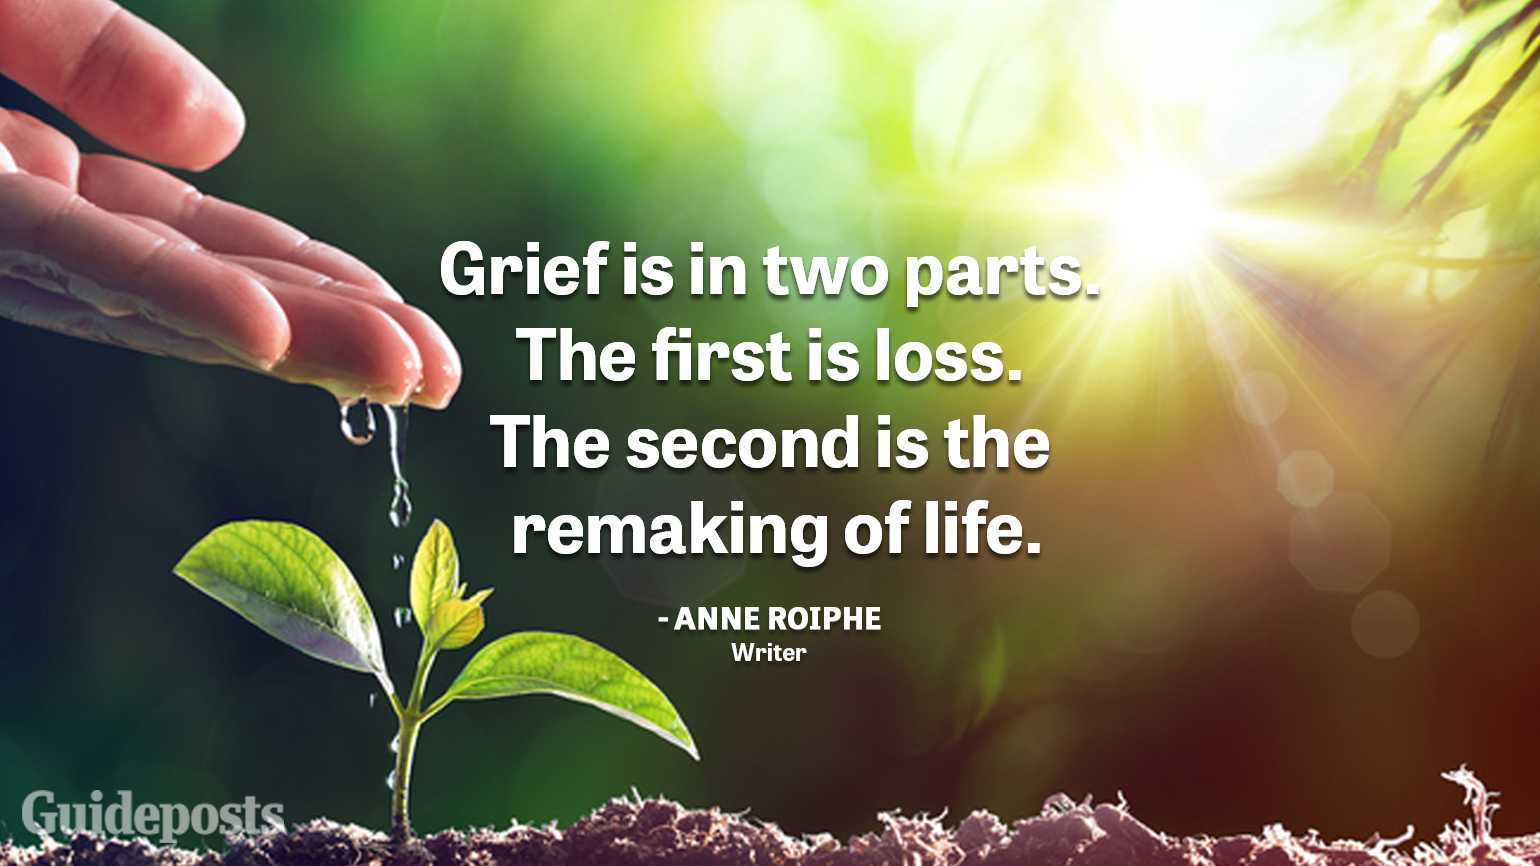 uplifting grief quotes guideposts